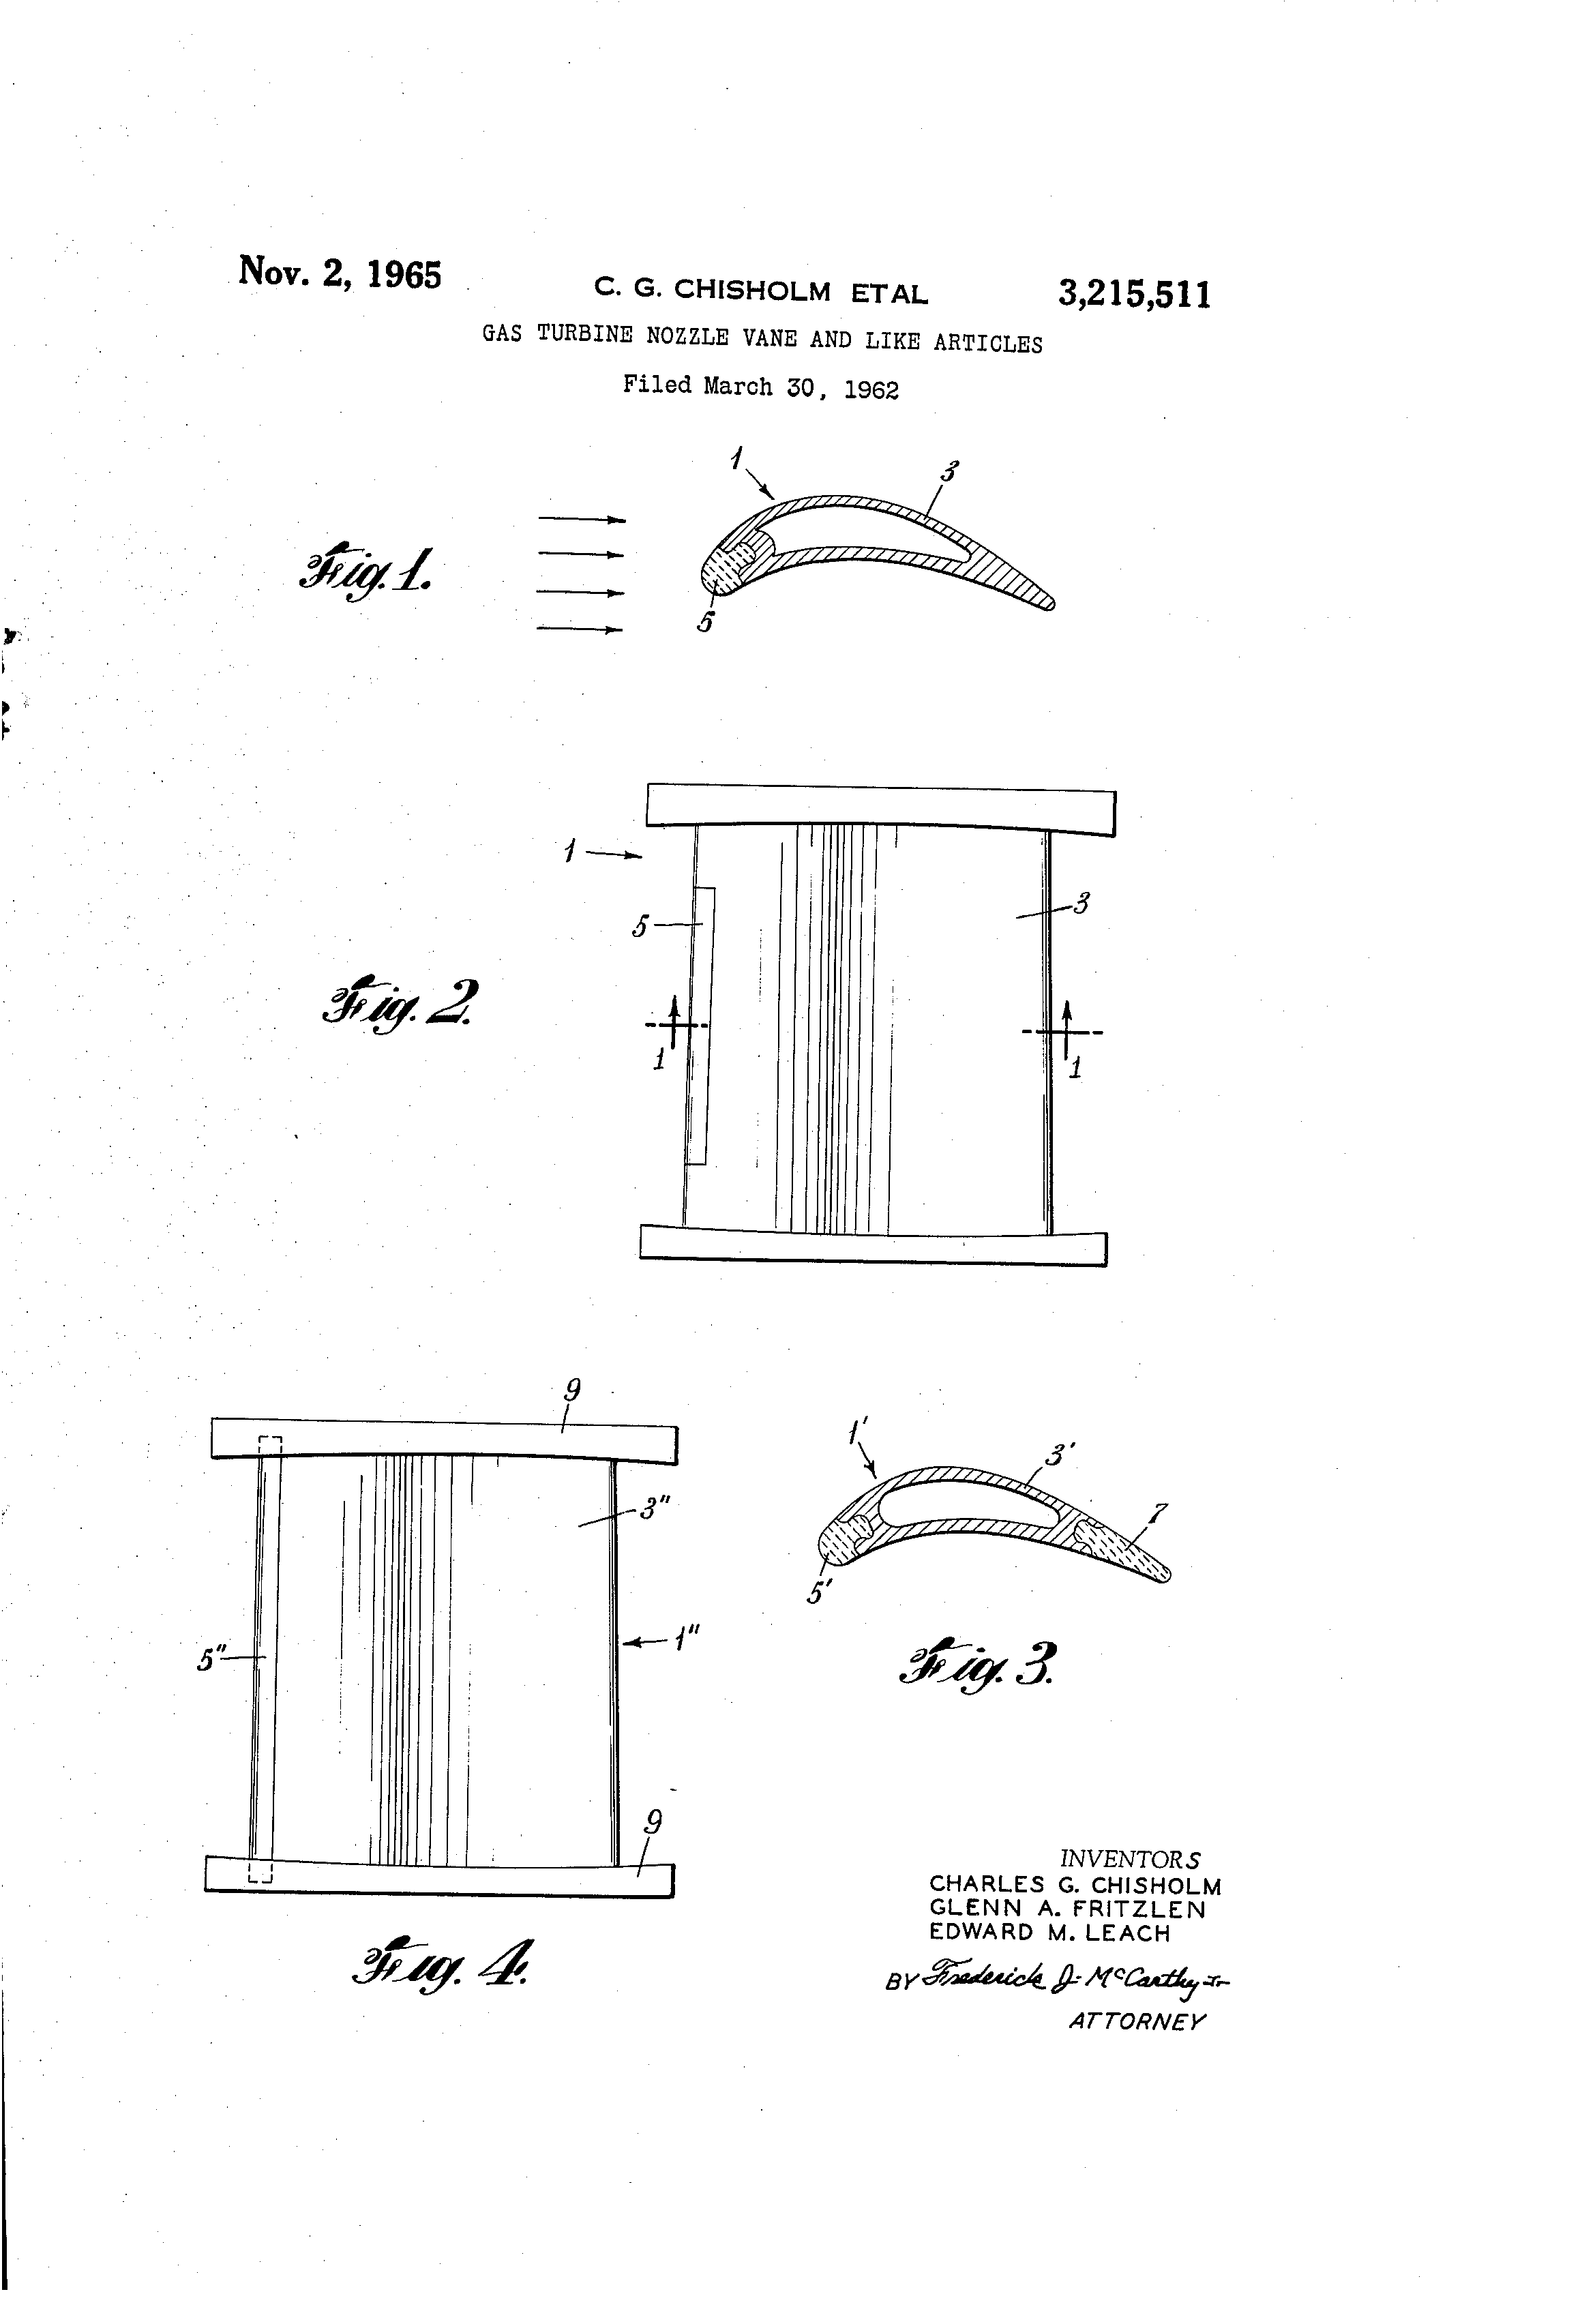 Patent US Gas turbine nozzle vane and like articles